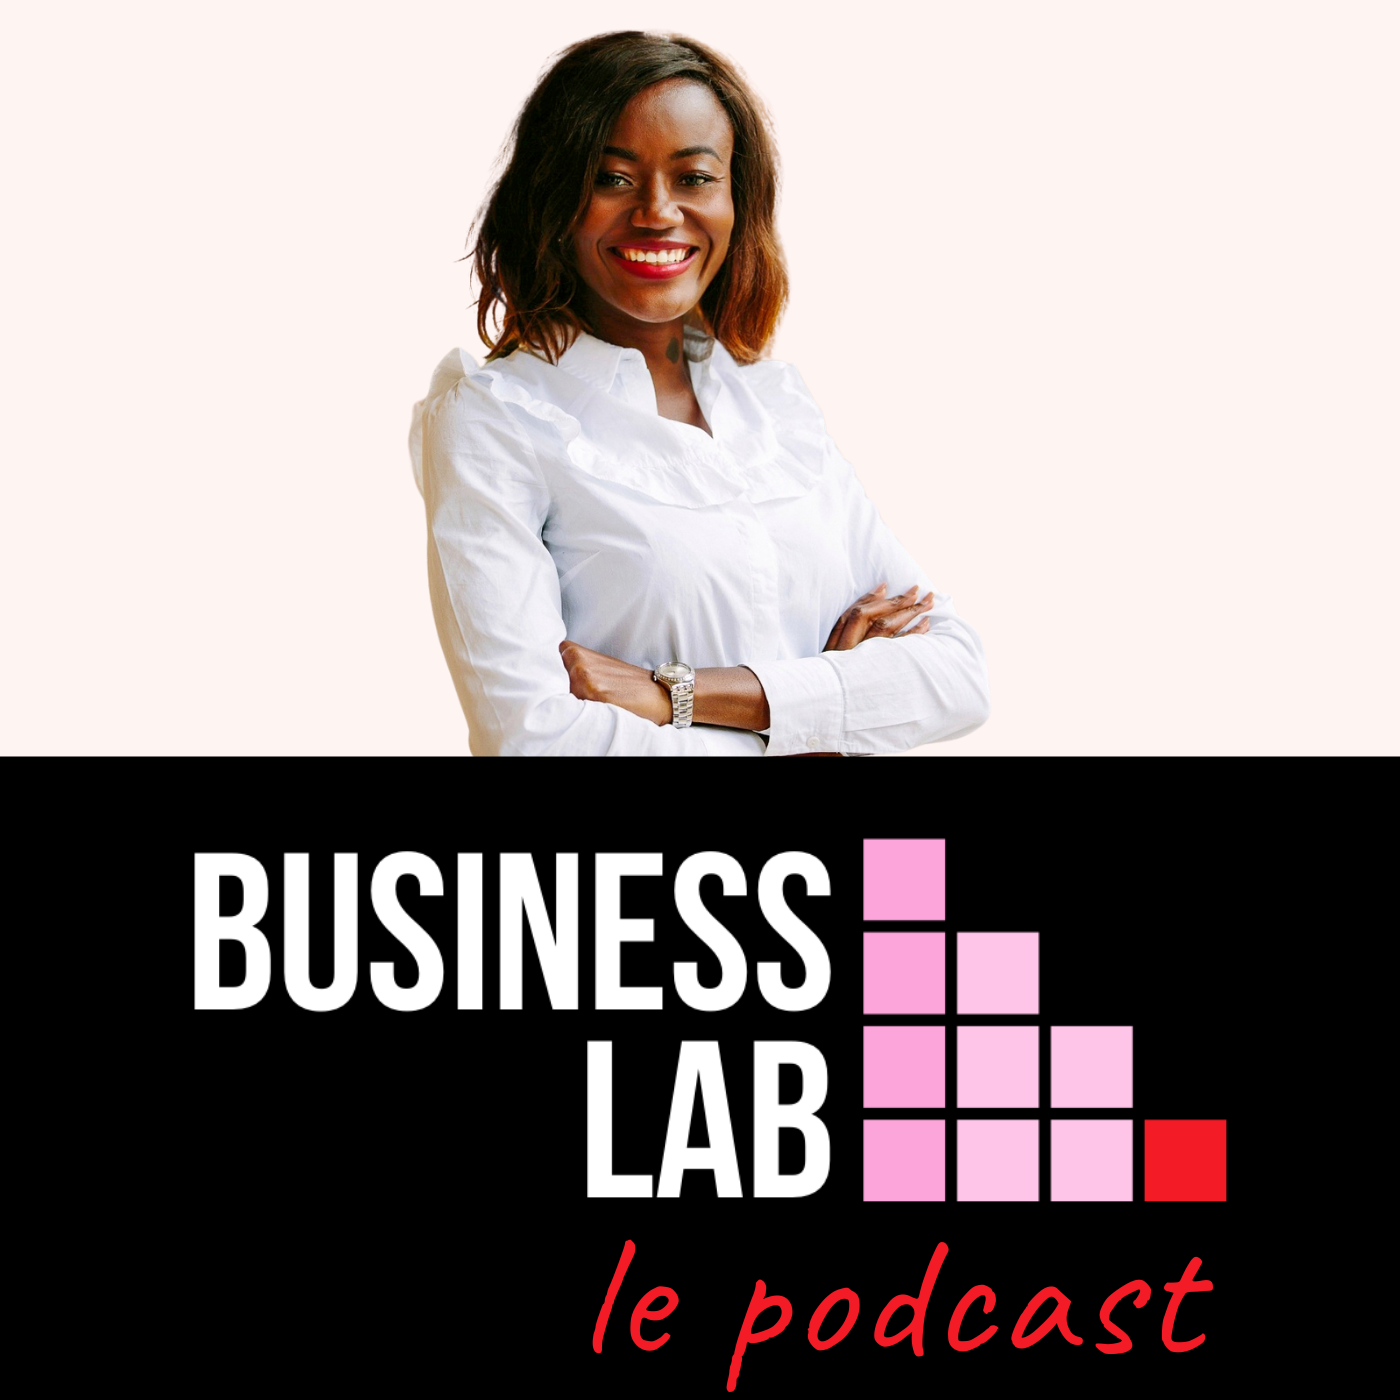 Business Lab - le podcast